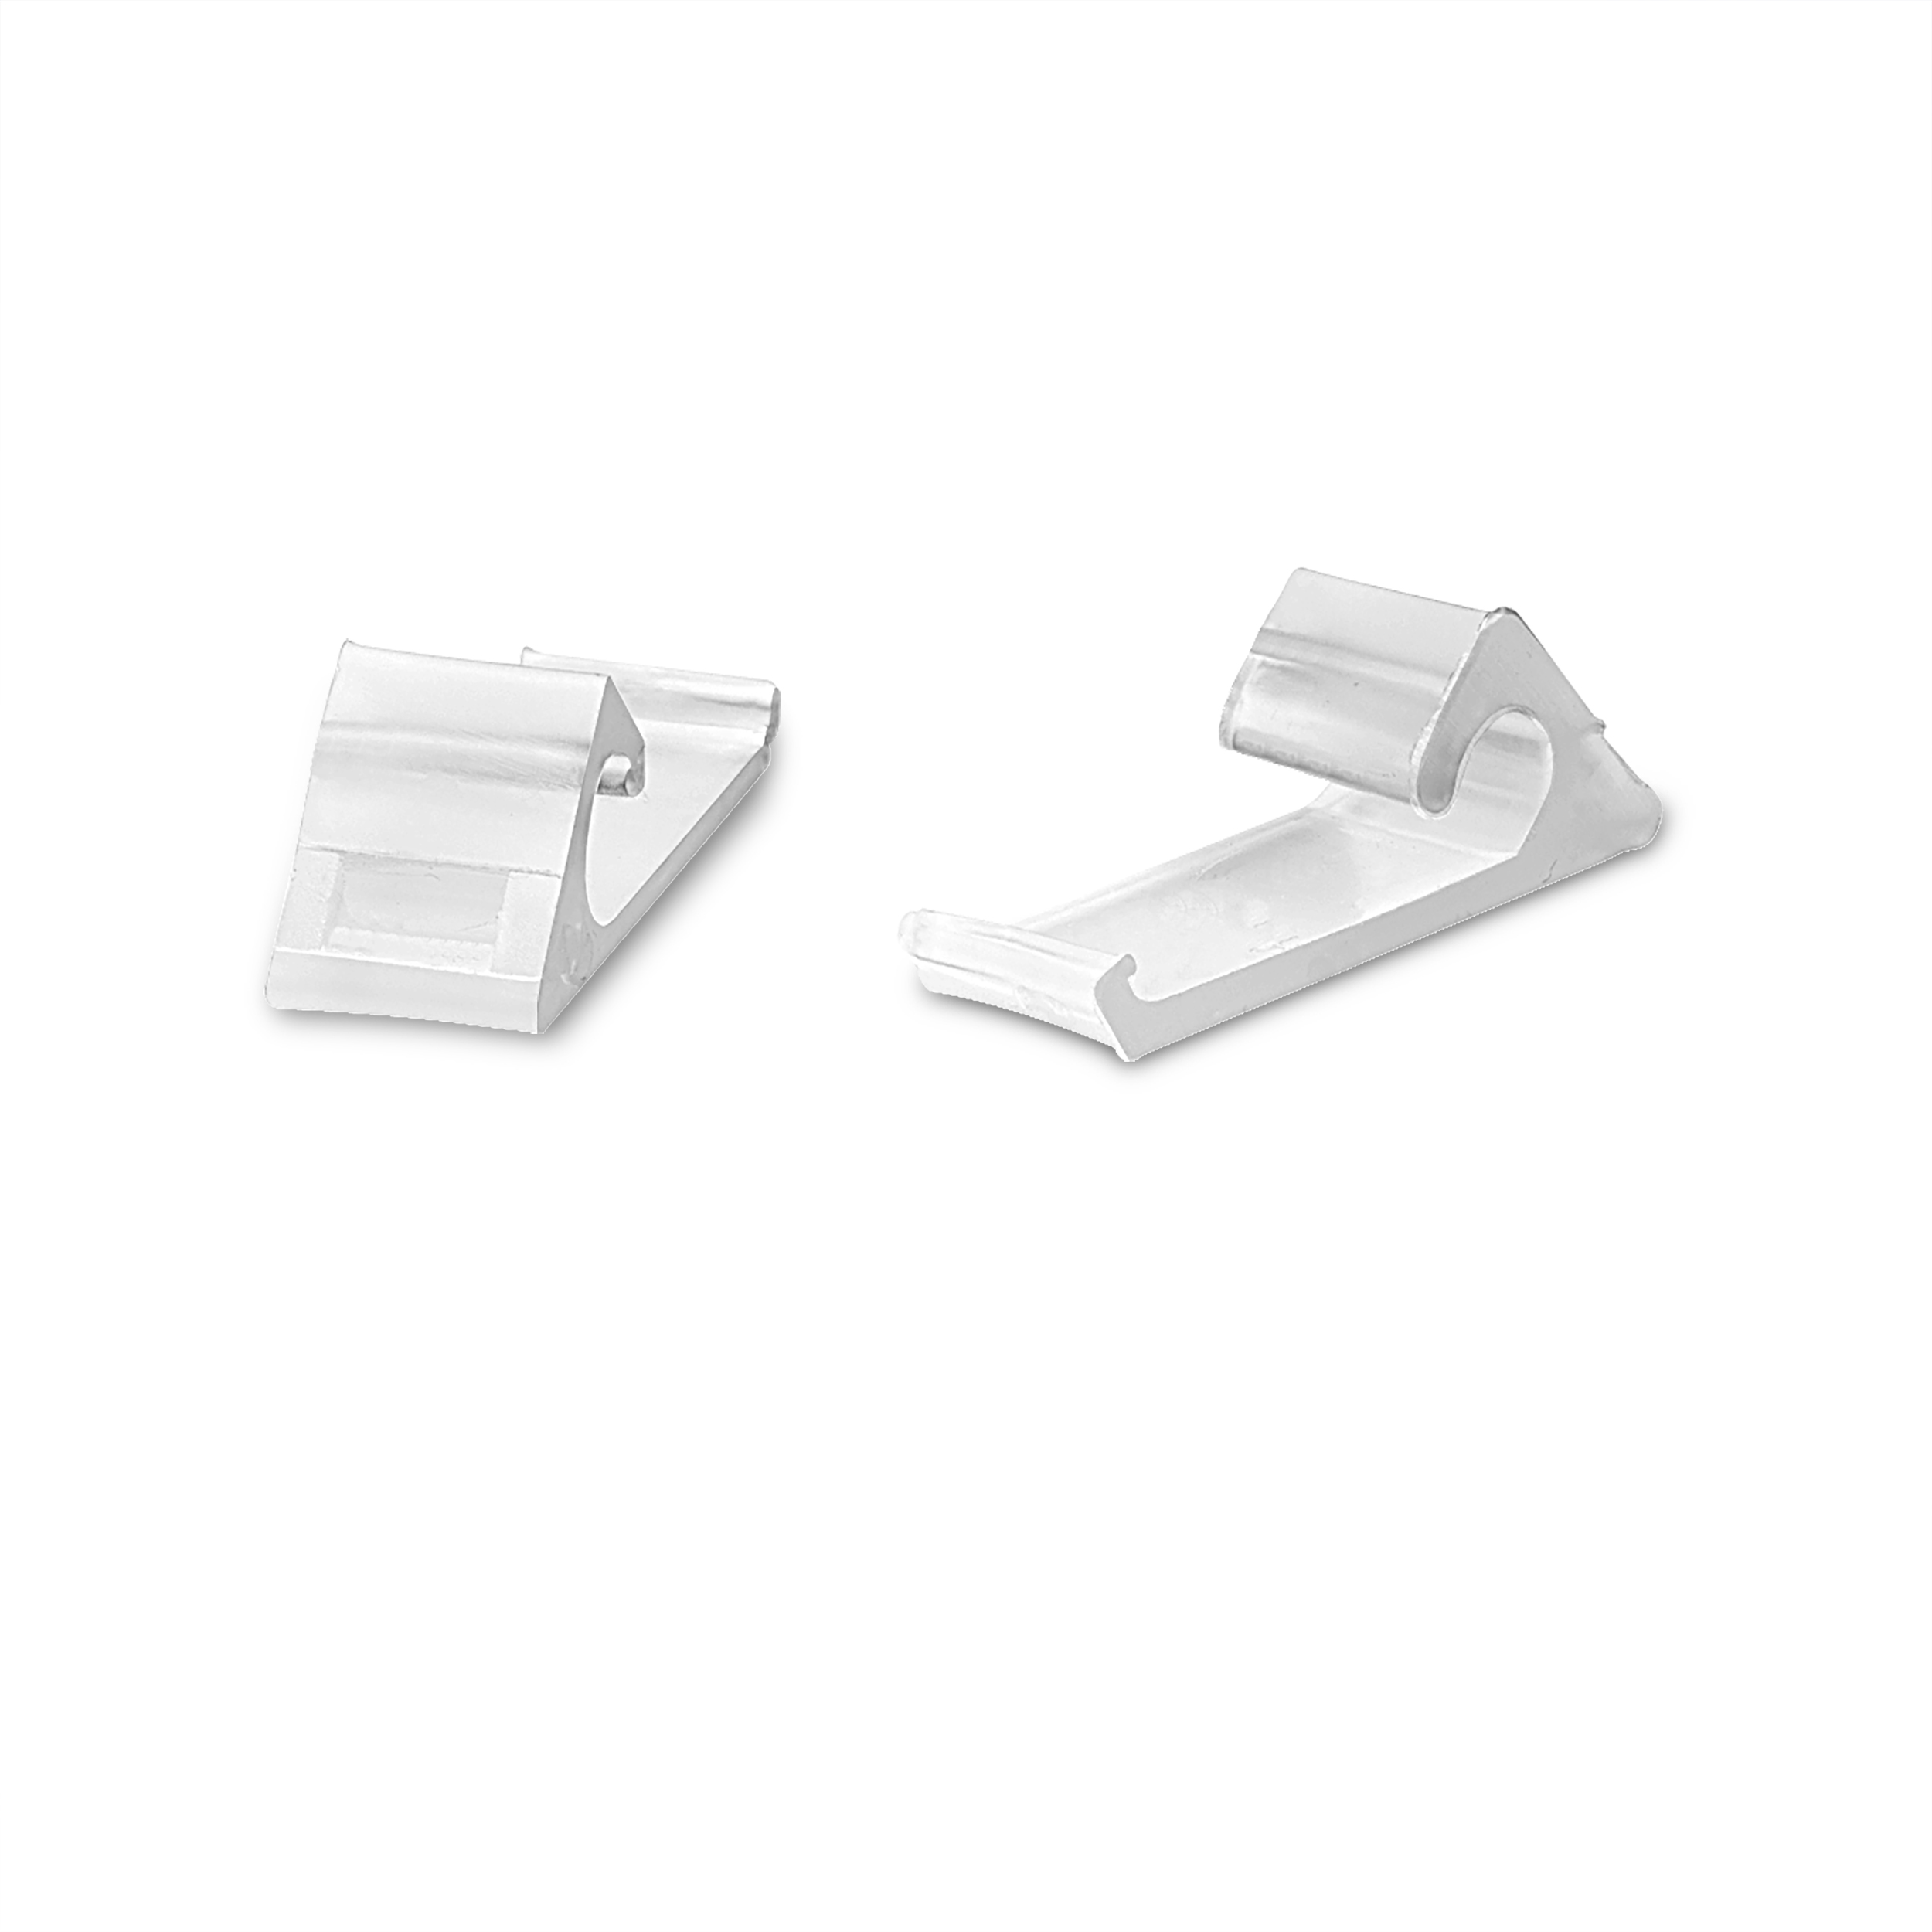 Horizontal Siding Clips For Vinyl Rg6 Cable Snap In Clamp Clip White 50ea Ebay